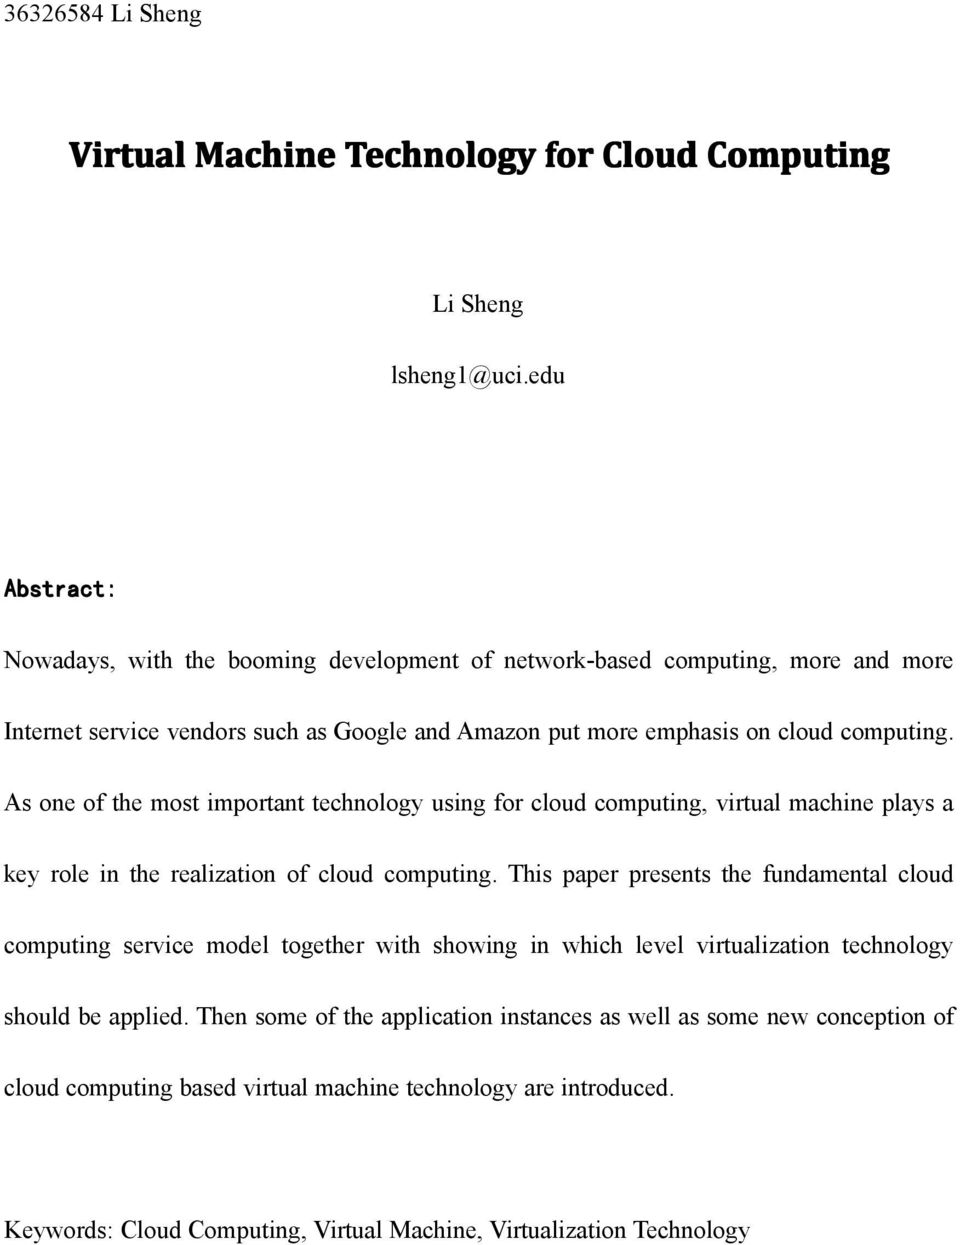 As one of the most important technology using for cloud computing, virtual machine plays a key role in the realization of cloud computing.